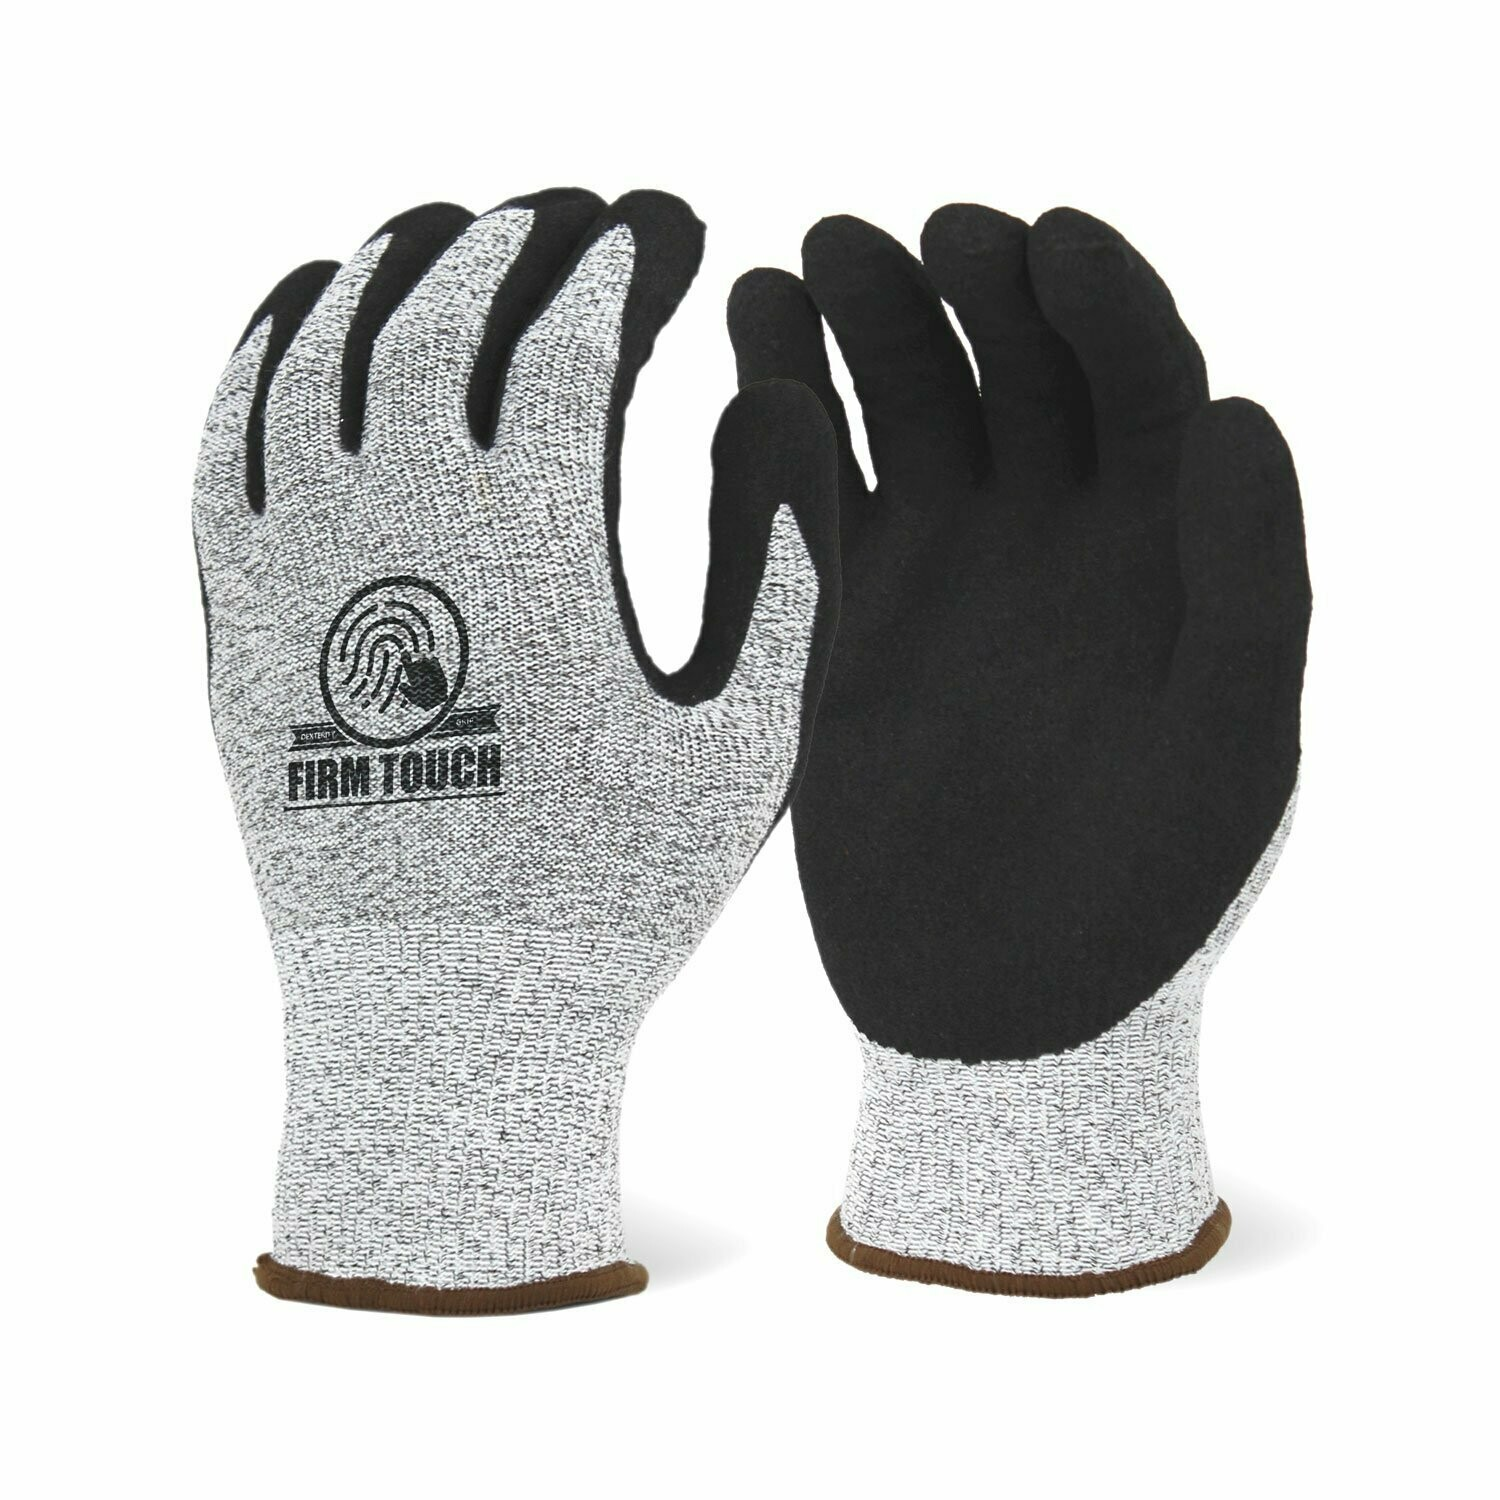 Nitrile Coated Gloves High Cut Resistant Shell - CUT A4 (12 pack)